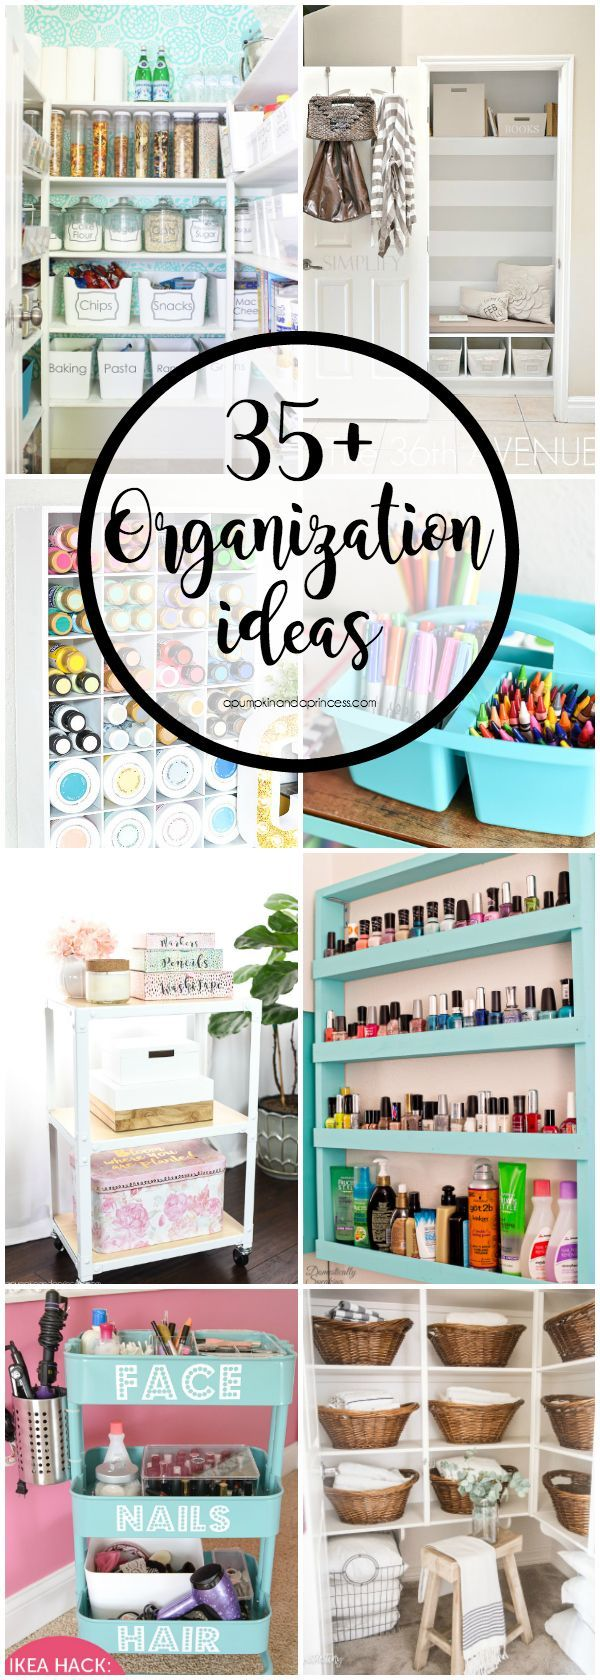 35 organization tips de cluttering hacks and storage ideas for every space in - Desk Organizing Ideas